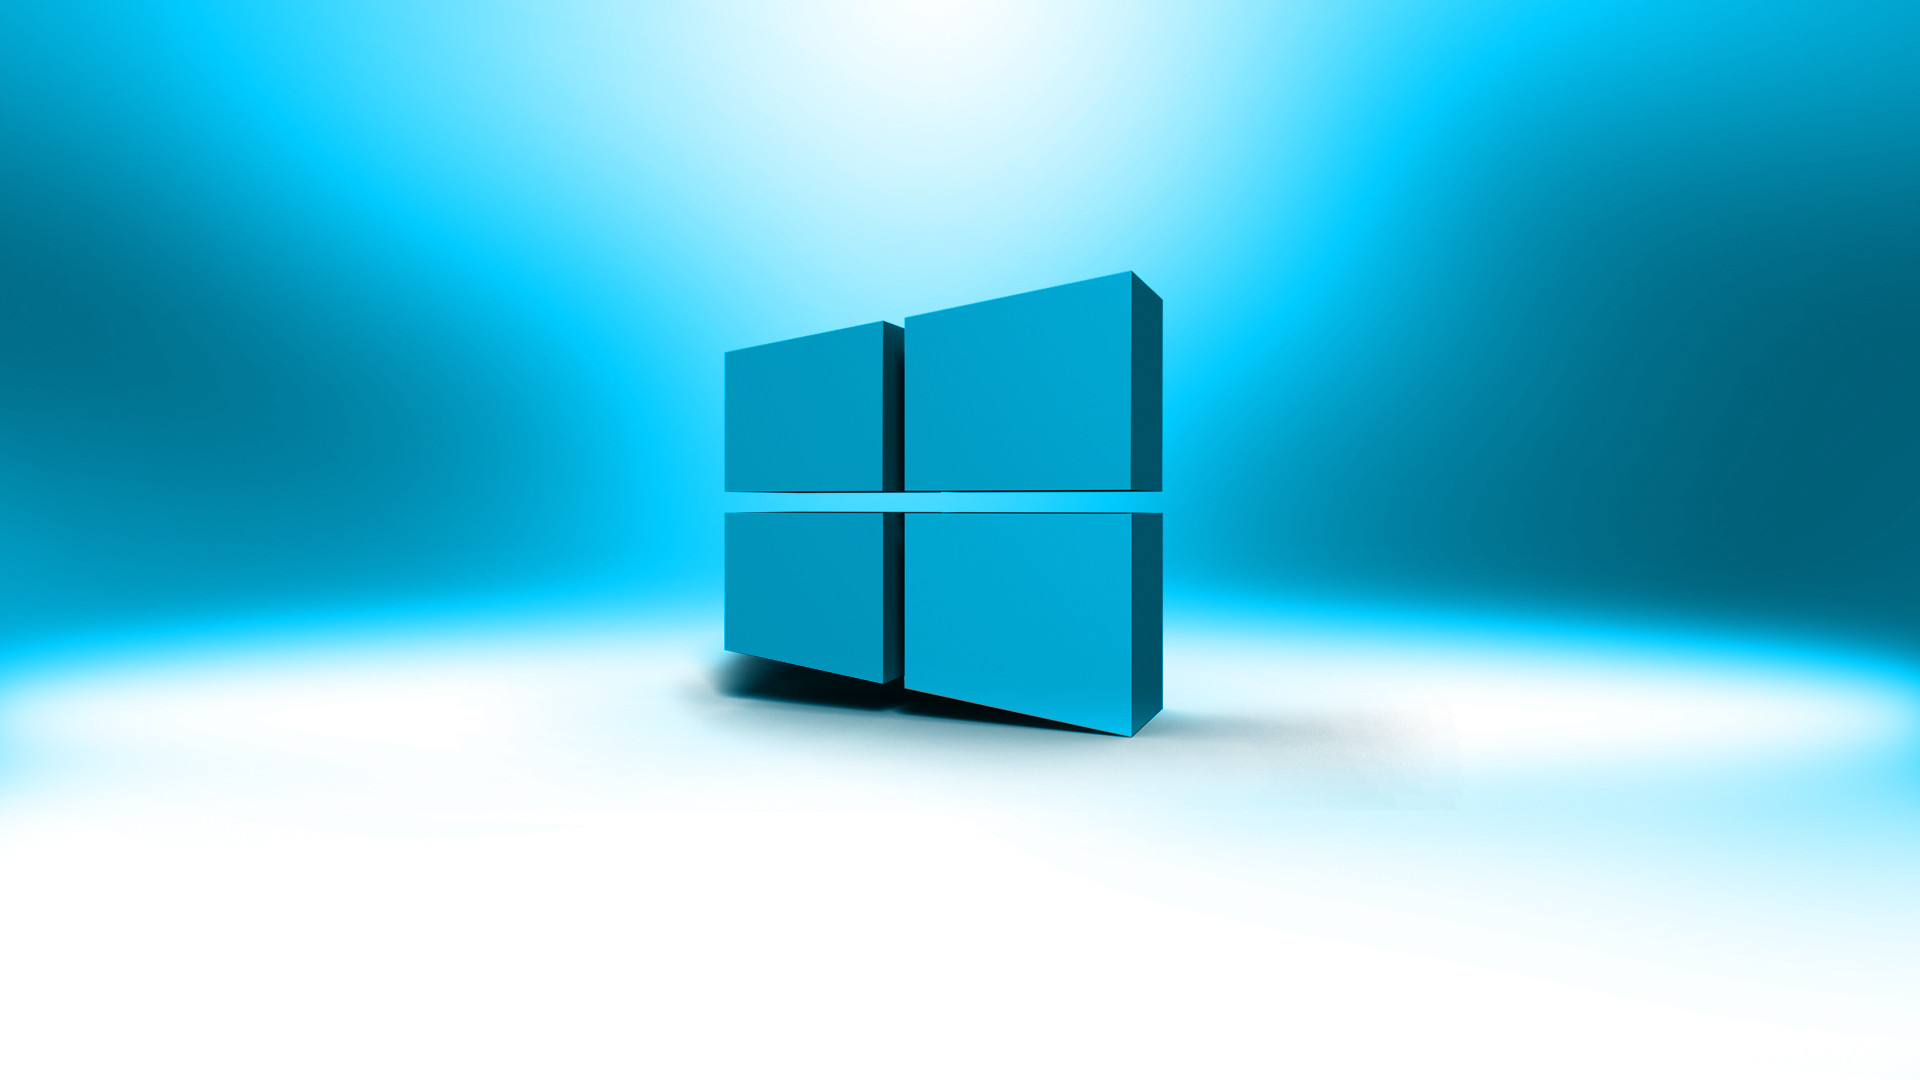 Windows 10 hd wallpapers 74 images - Hd wallpapers for pc windows ...